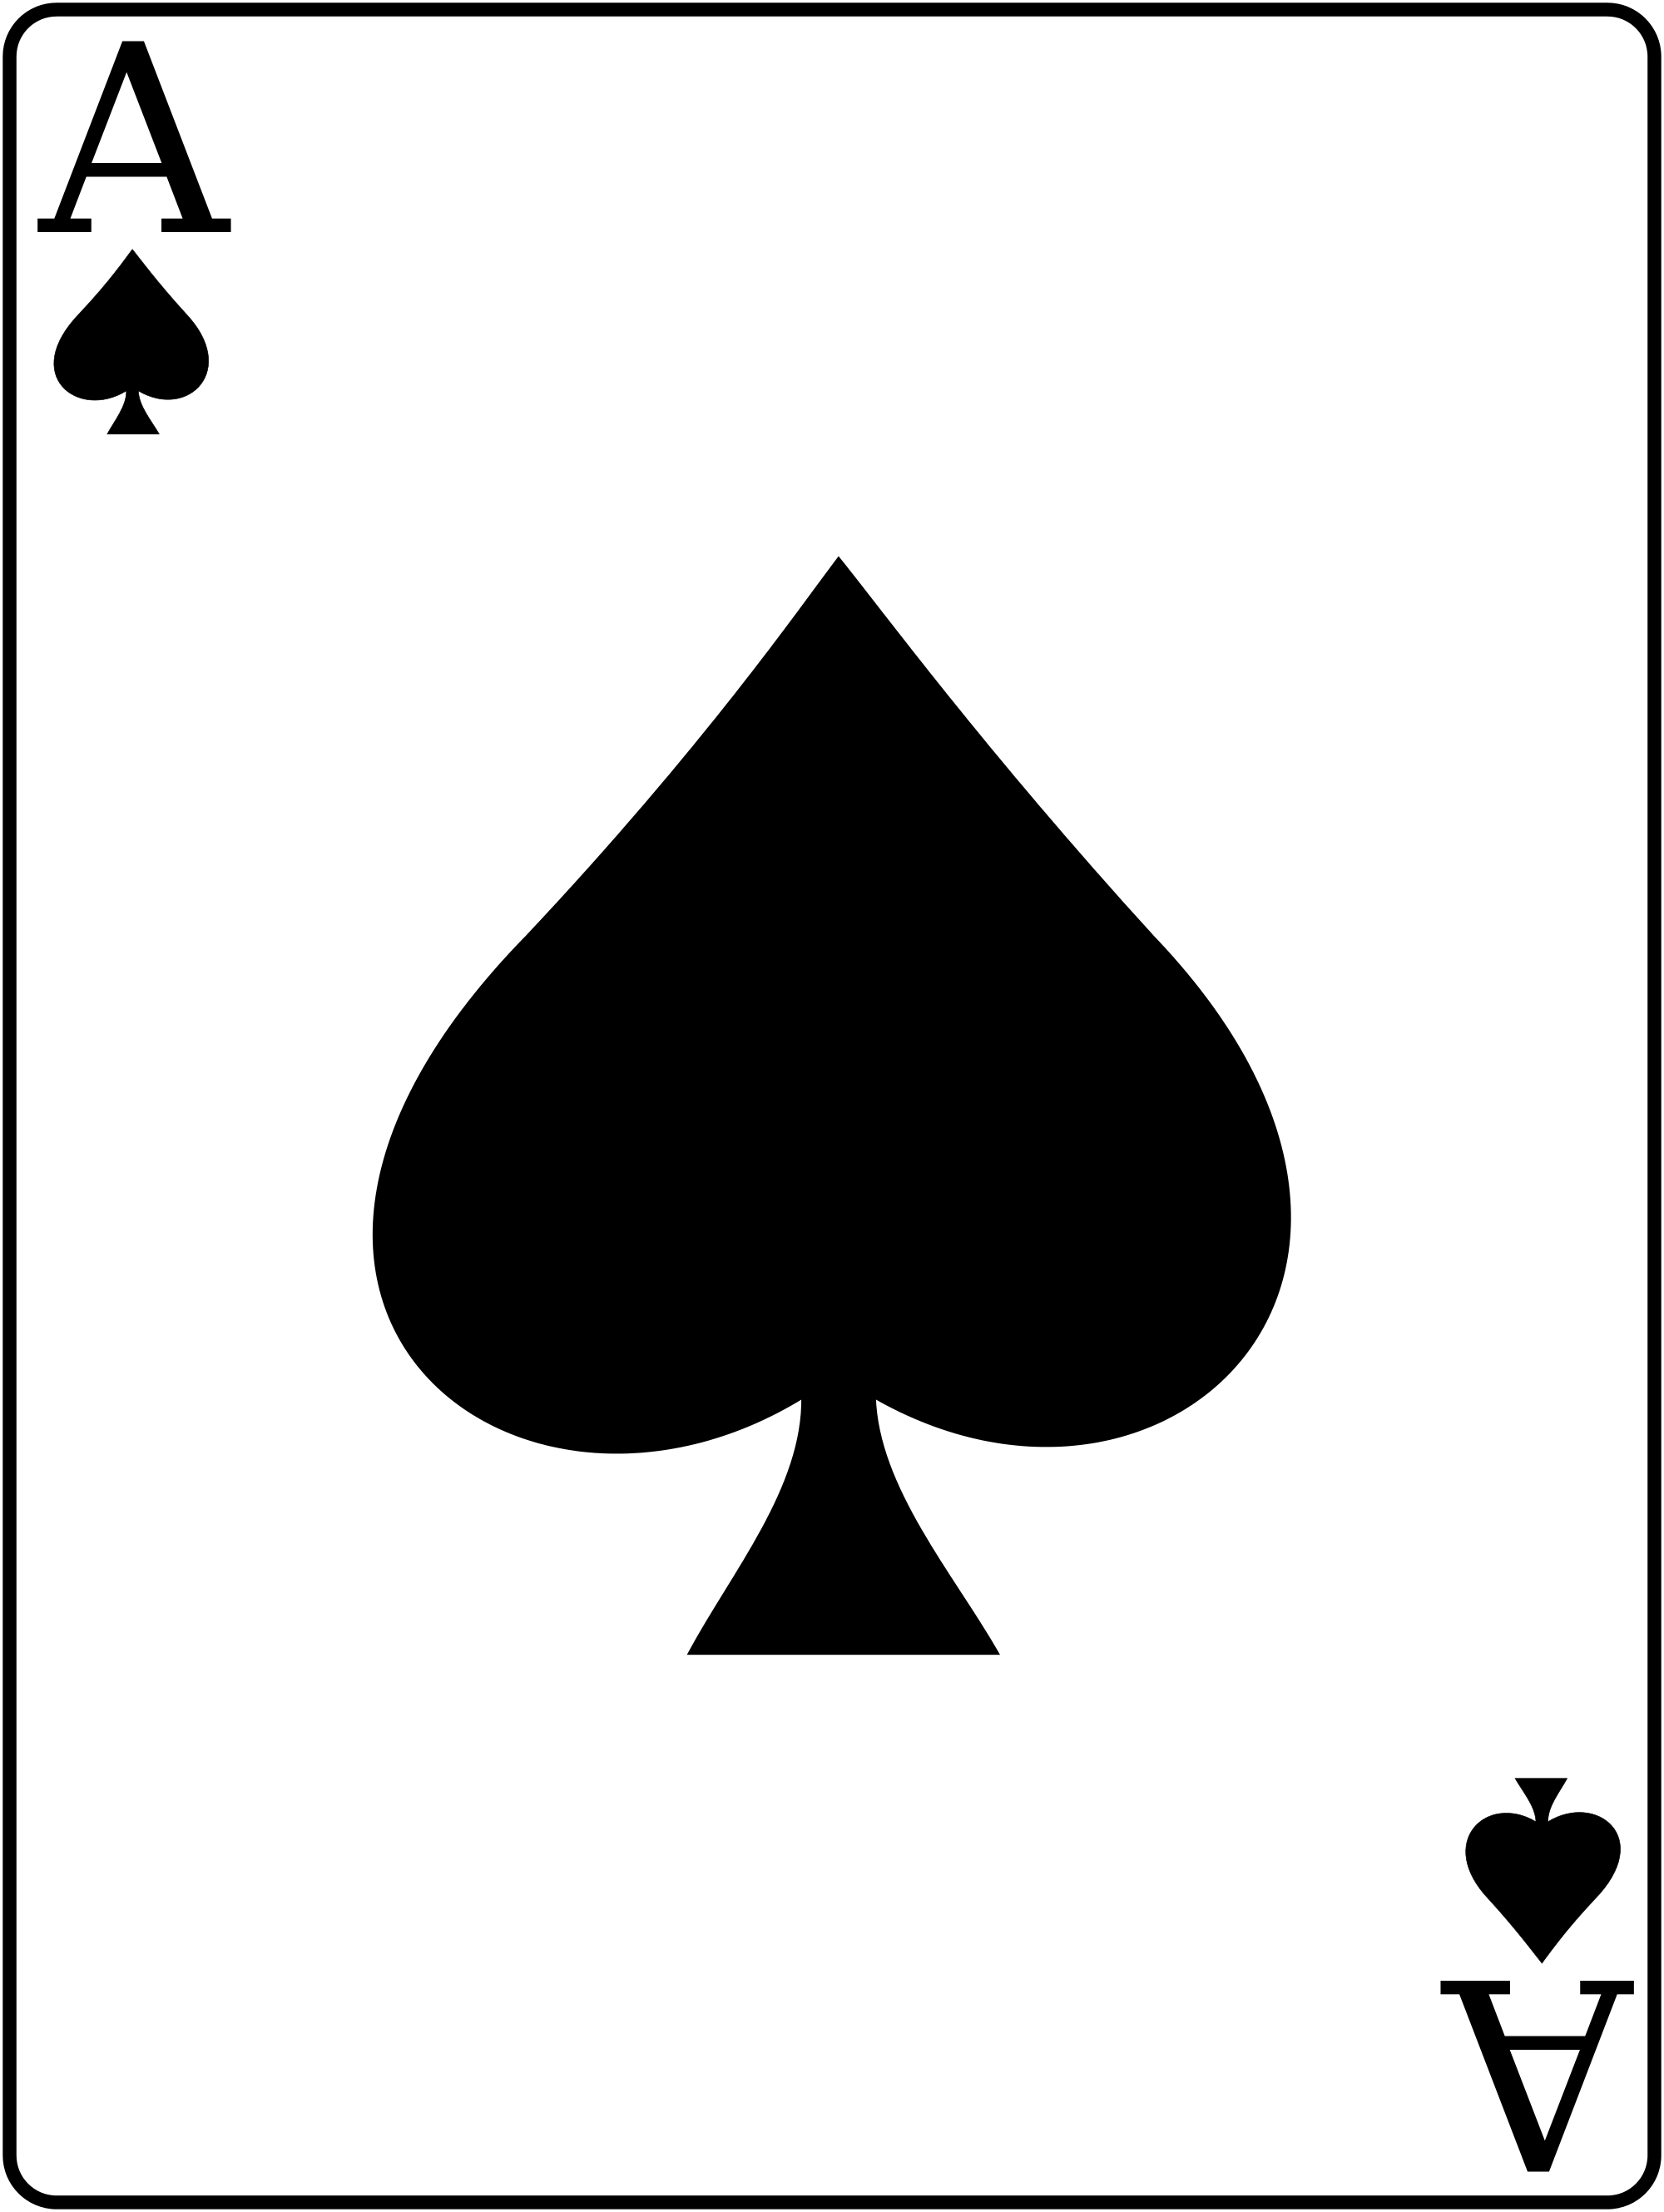 ace of spades - Google Search - Ace Card PNG